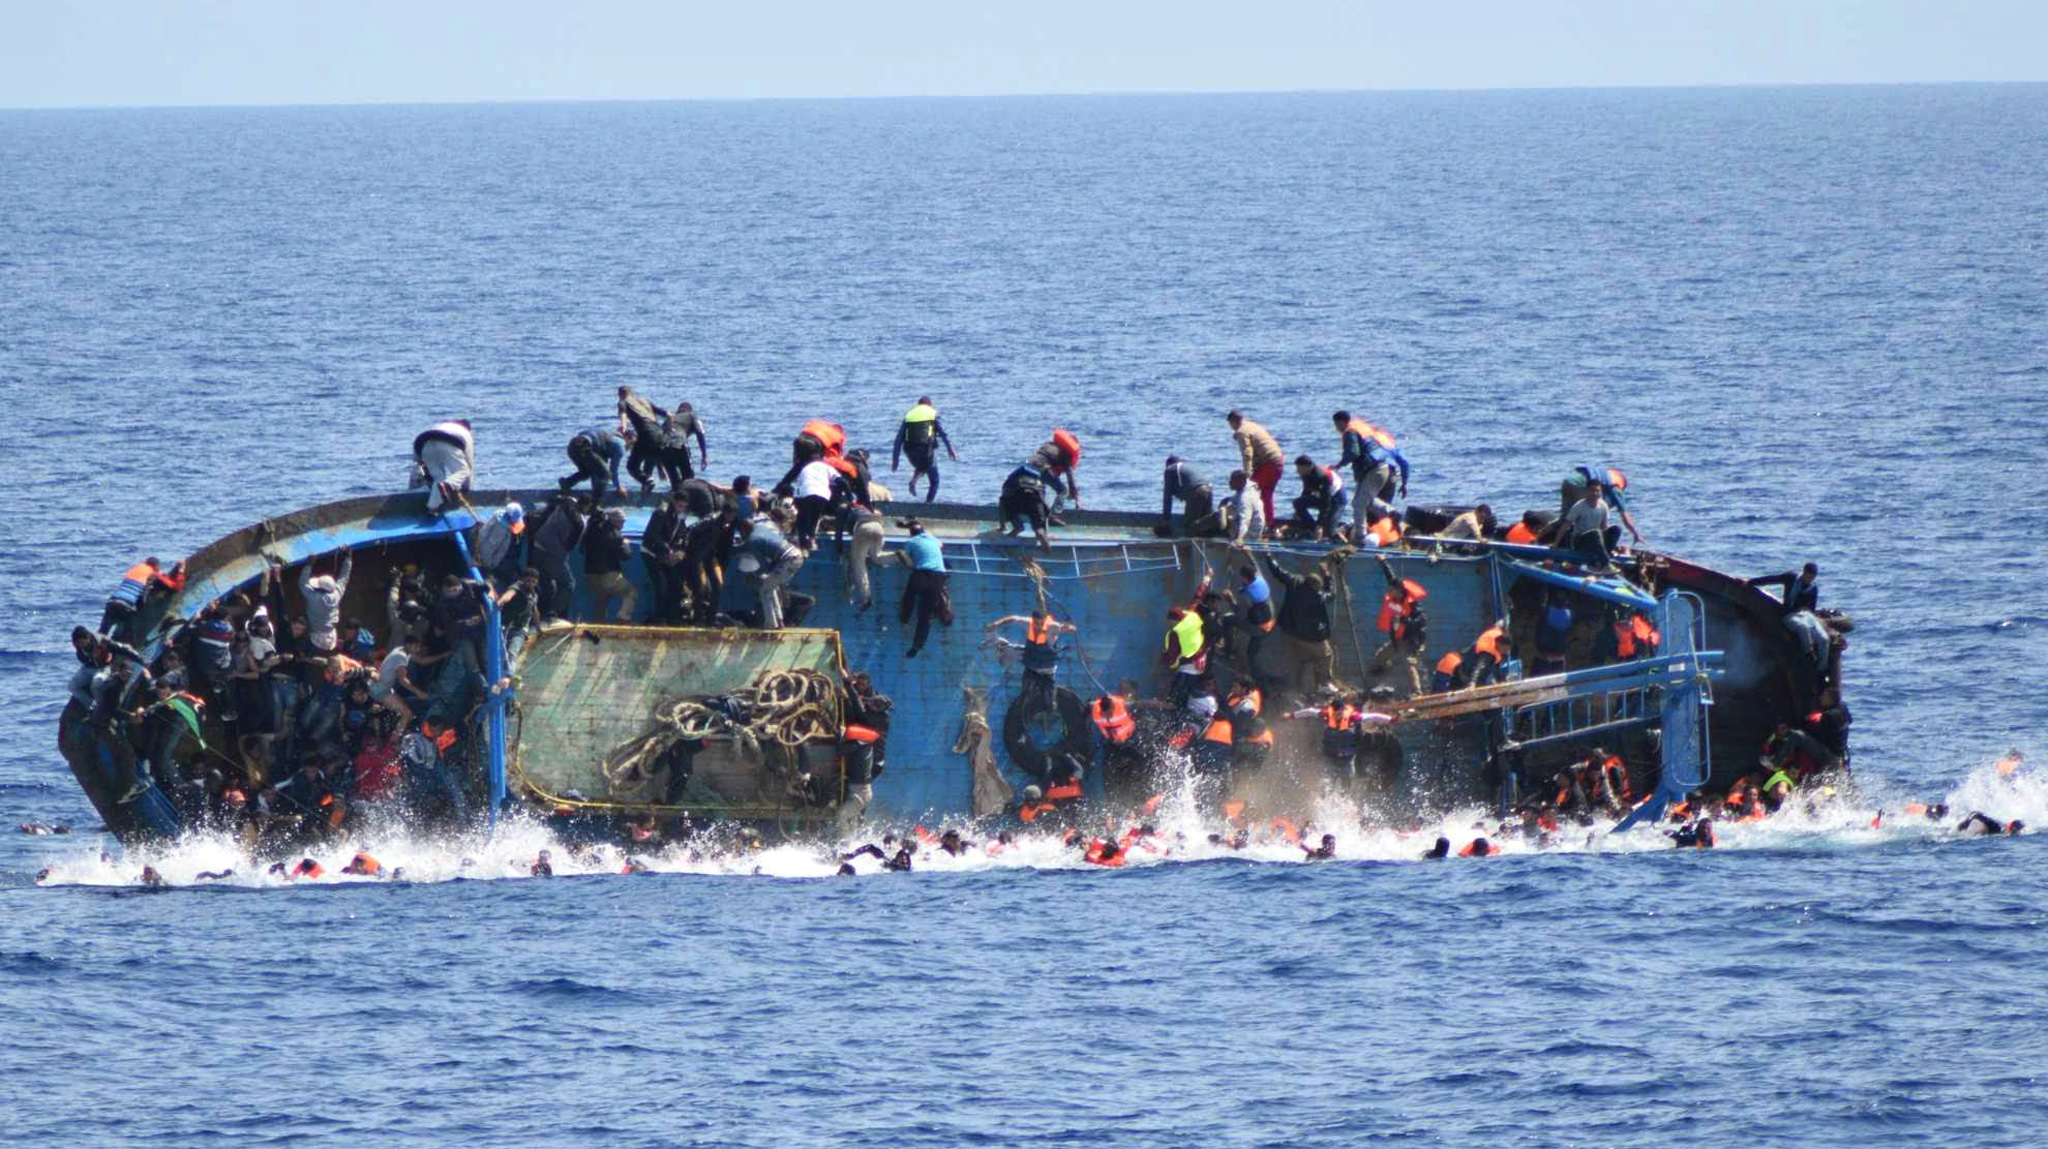 A handout picture released by the Italian Navy shows people jumping out of a boat right before it overturns in Canal of Sicily off the Libyan coast, 25 May 2016. The Italian navy says it has recovered five bodies from the overturned migrant ship.